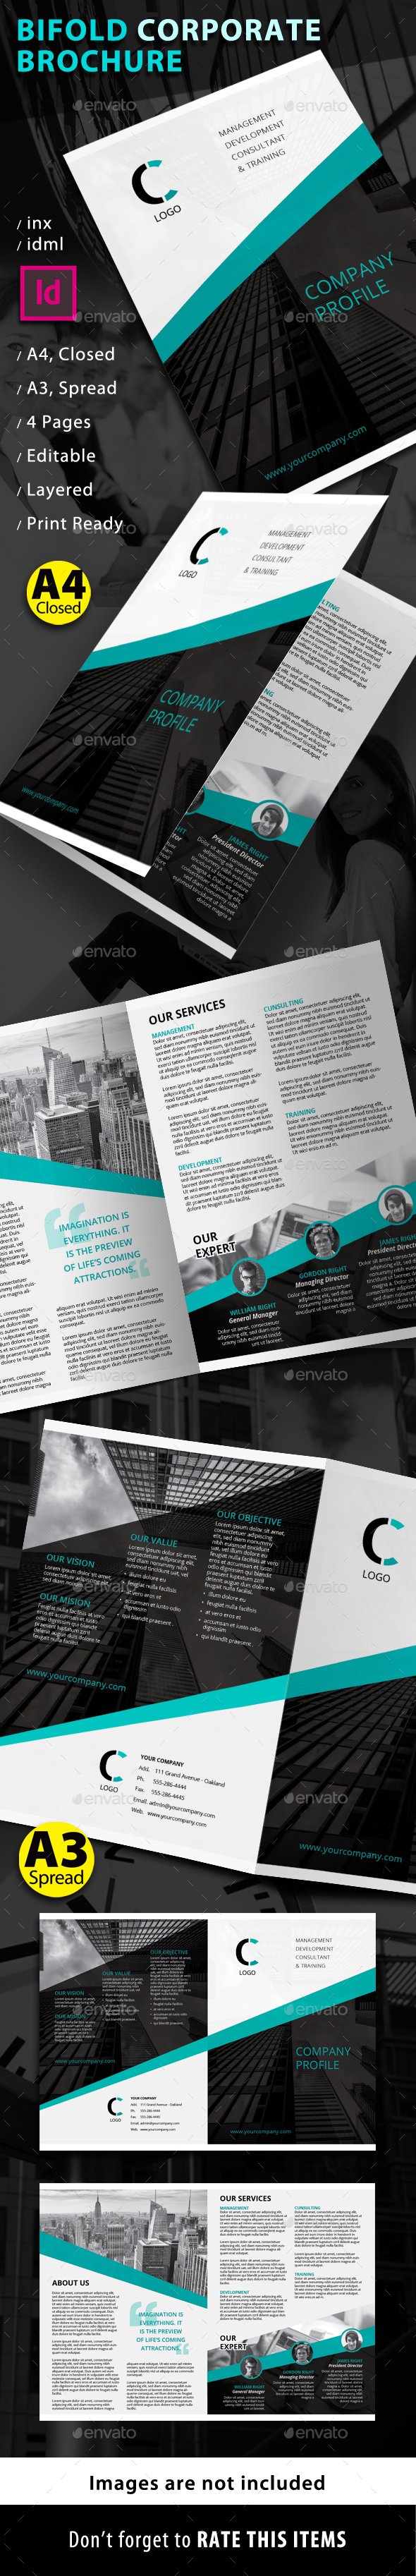 Bifold Corporate Brochure - Corporate Brochures